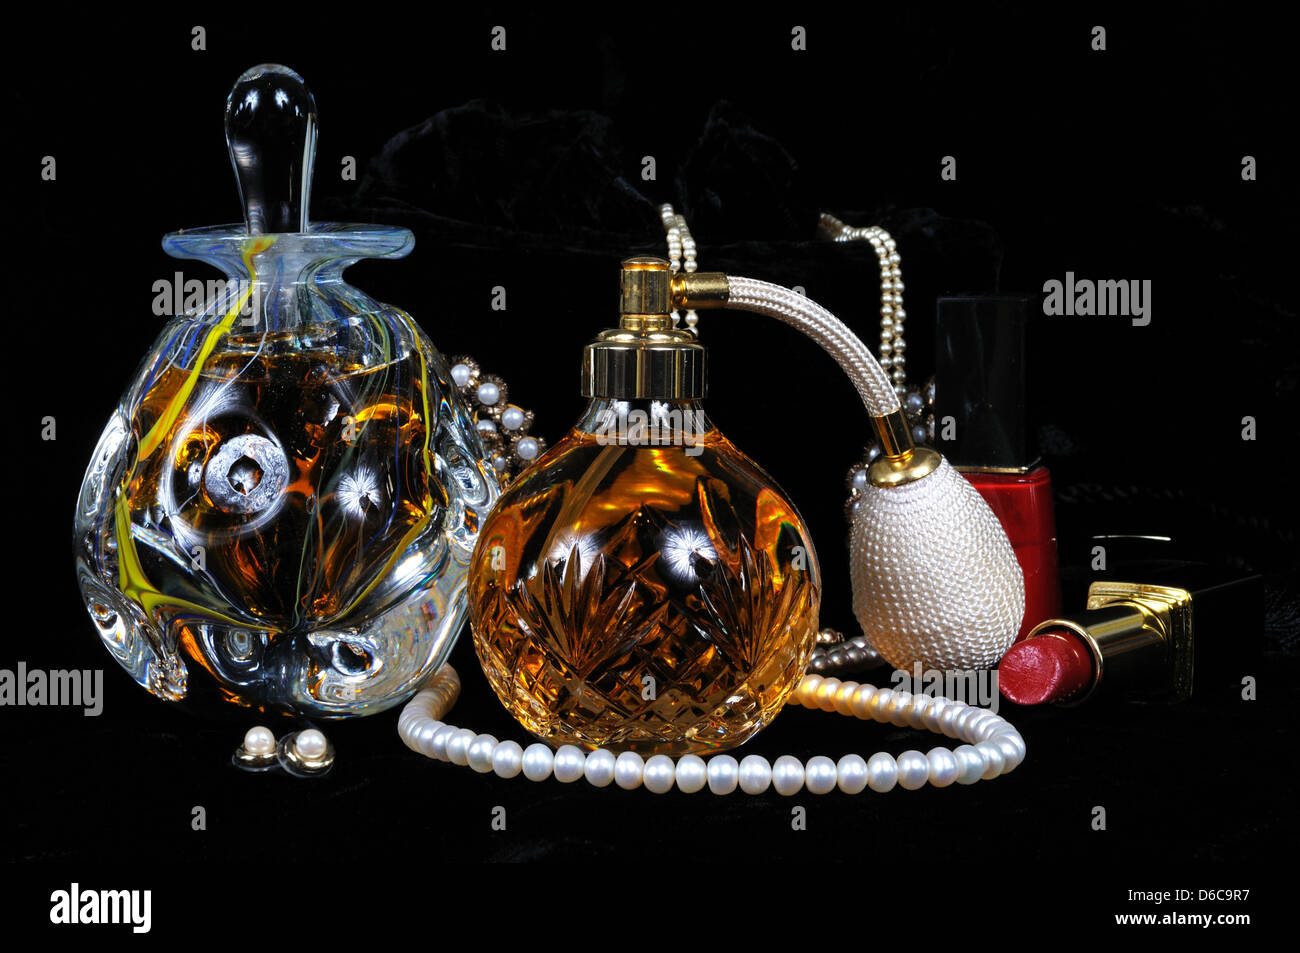 Perfume atomiser bottle, Perfume bottle with stopper and jewellery against a black background. - Stock Image